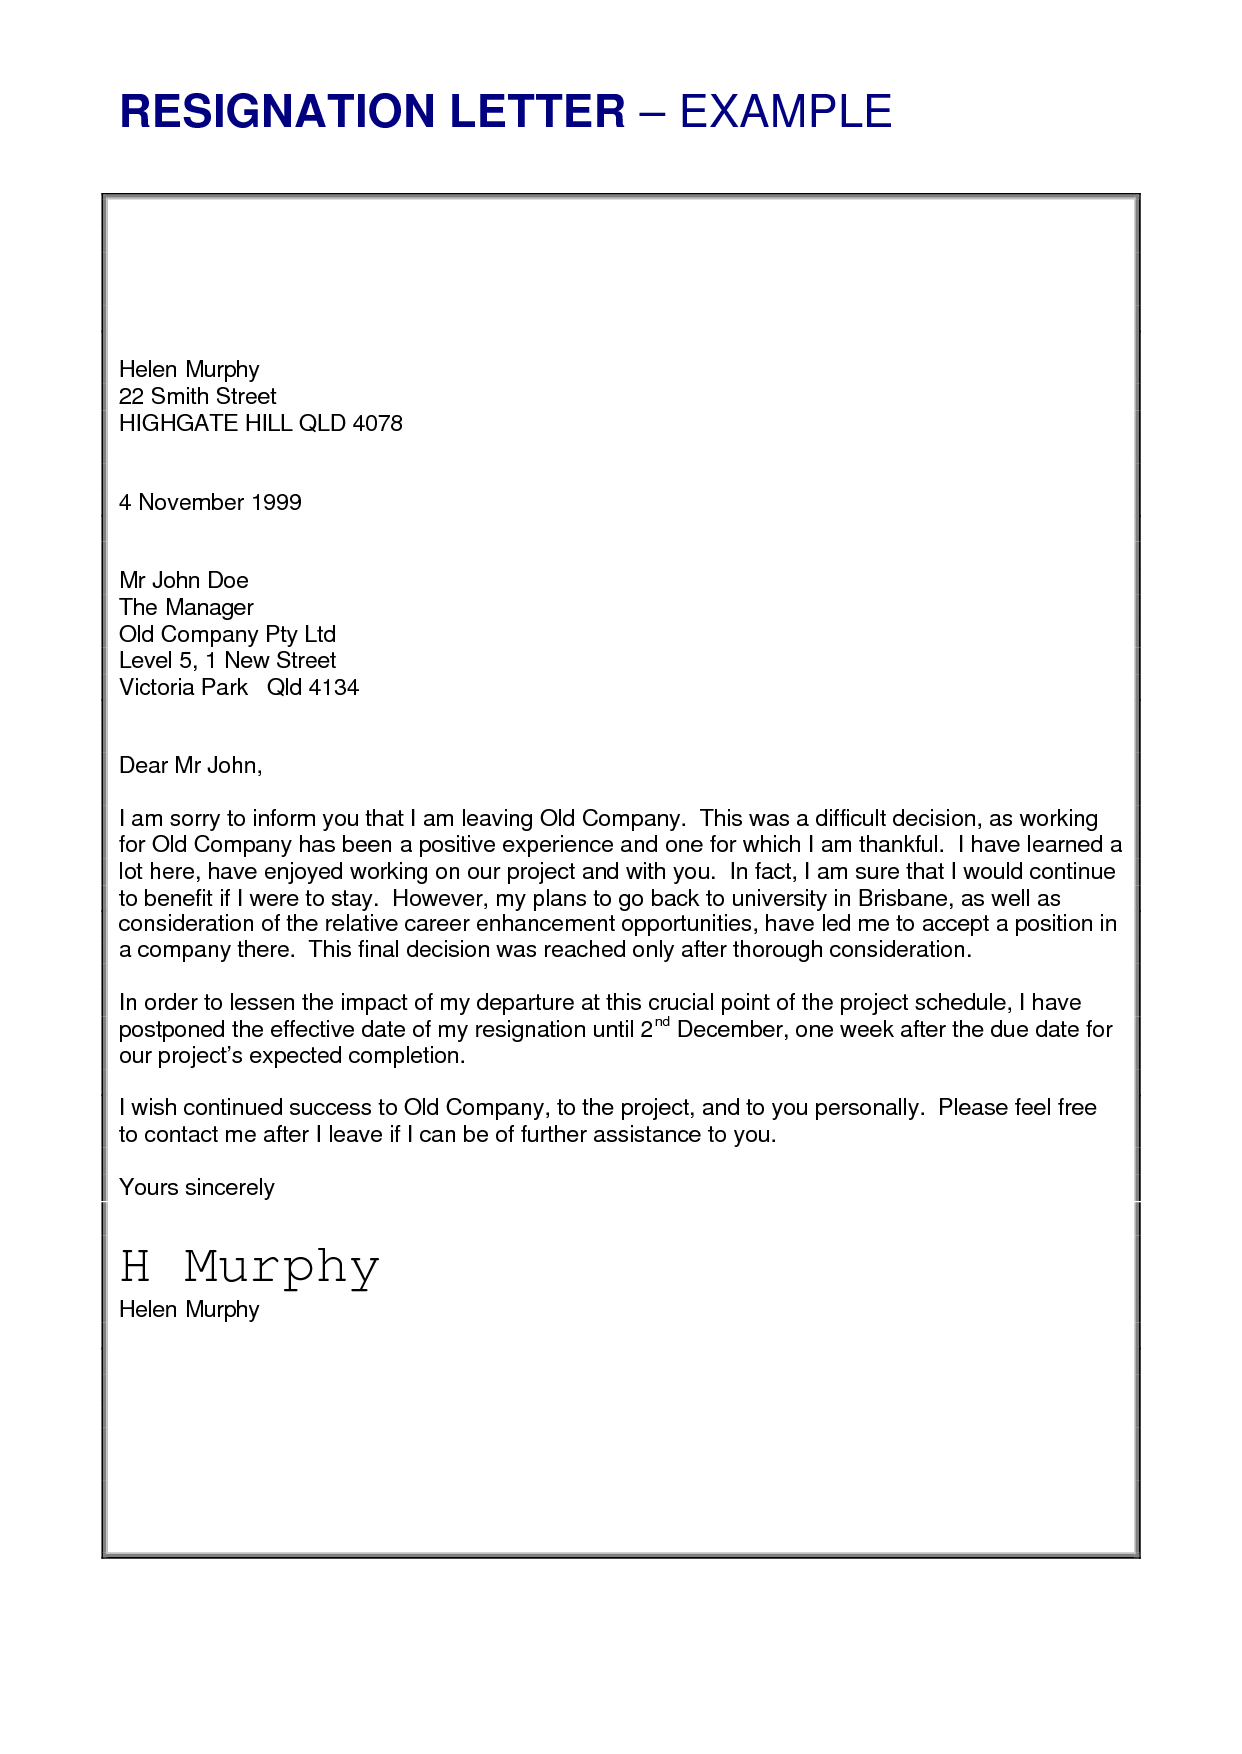 Free Resignation Letter Template Word - Job Resignation Letter Sample Loganun Blog Job